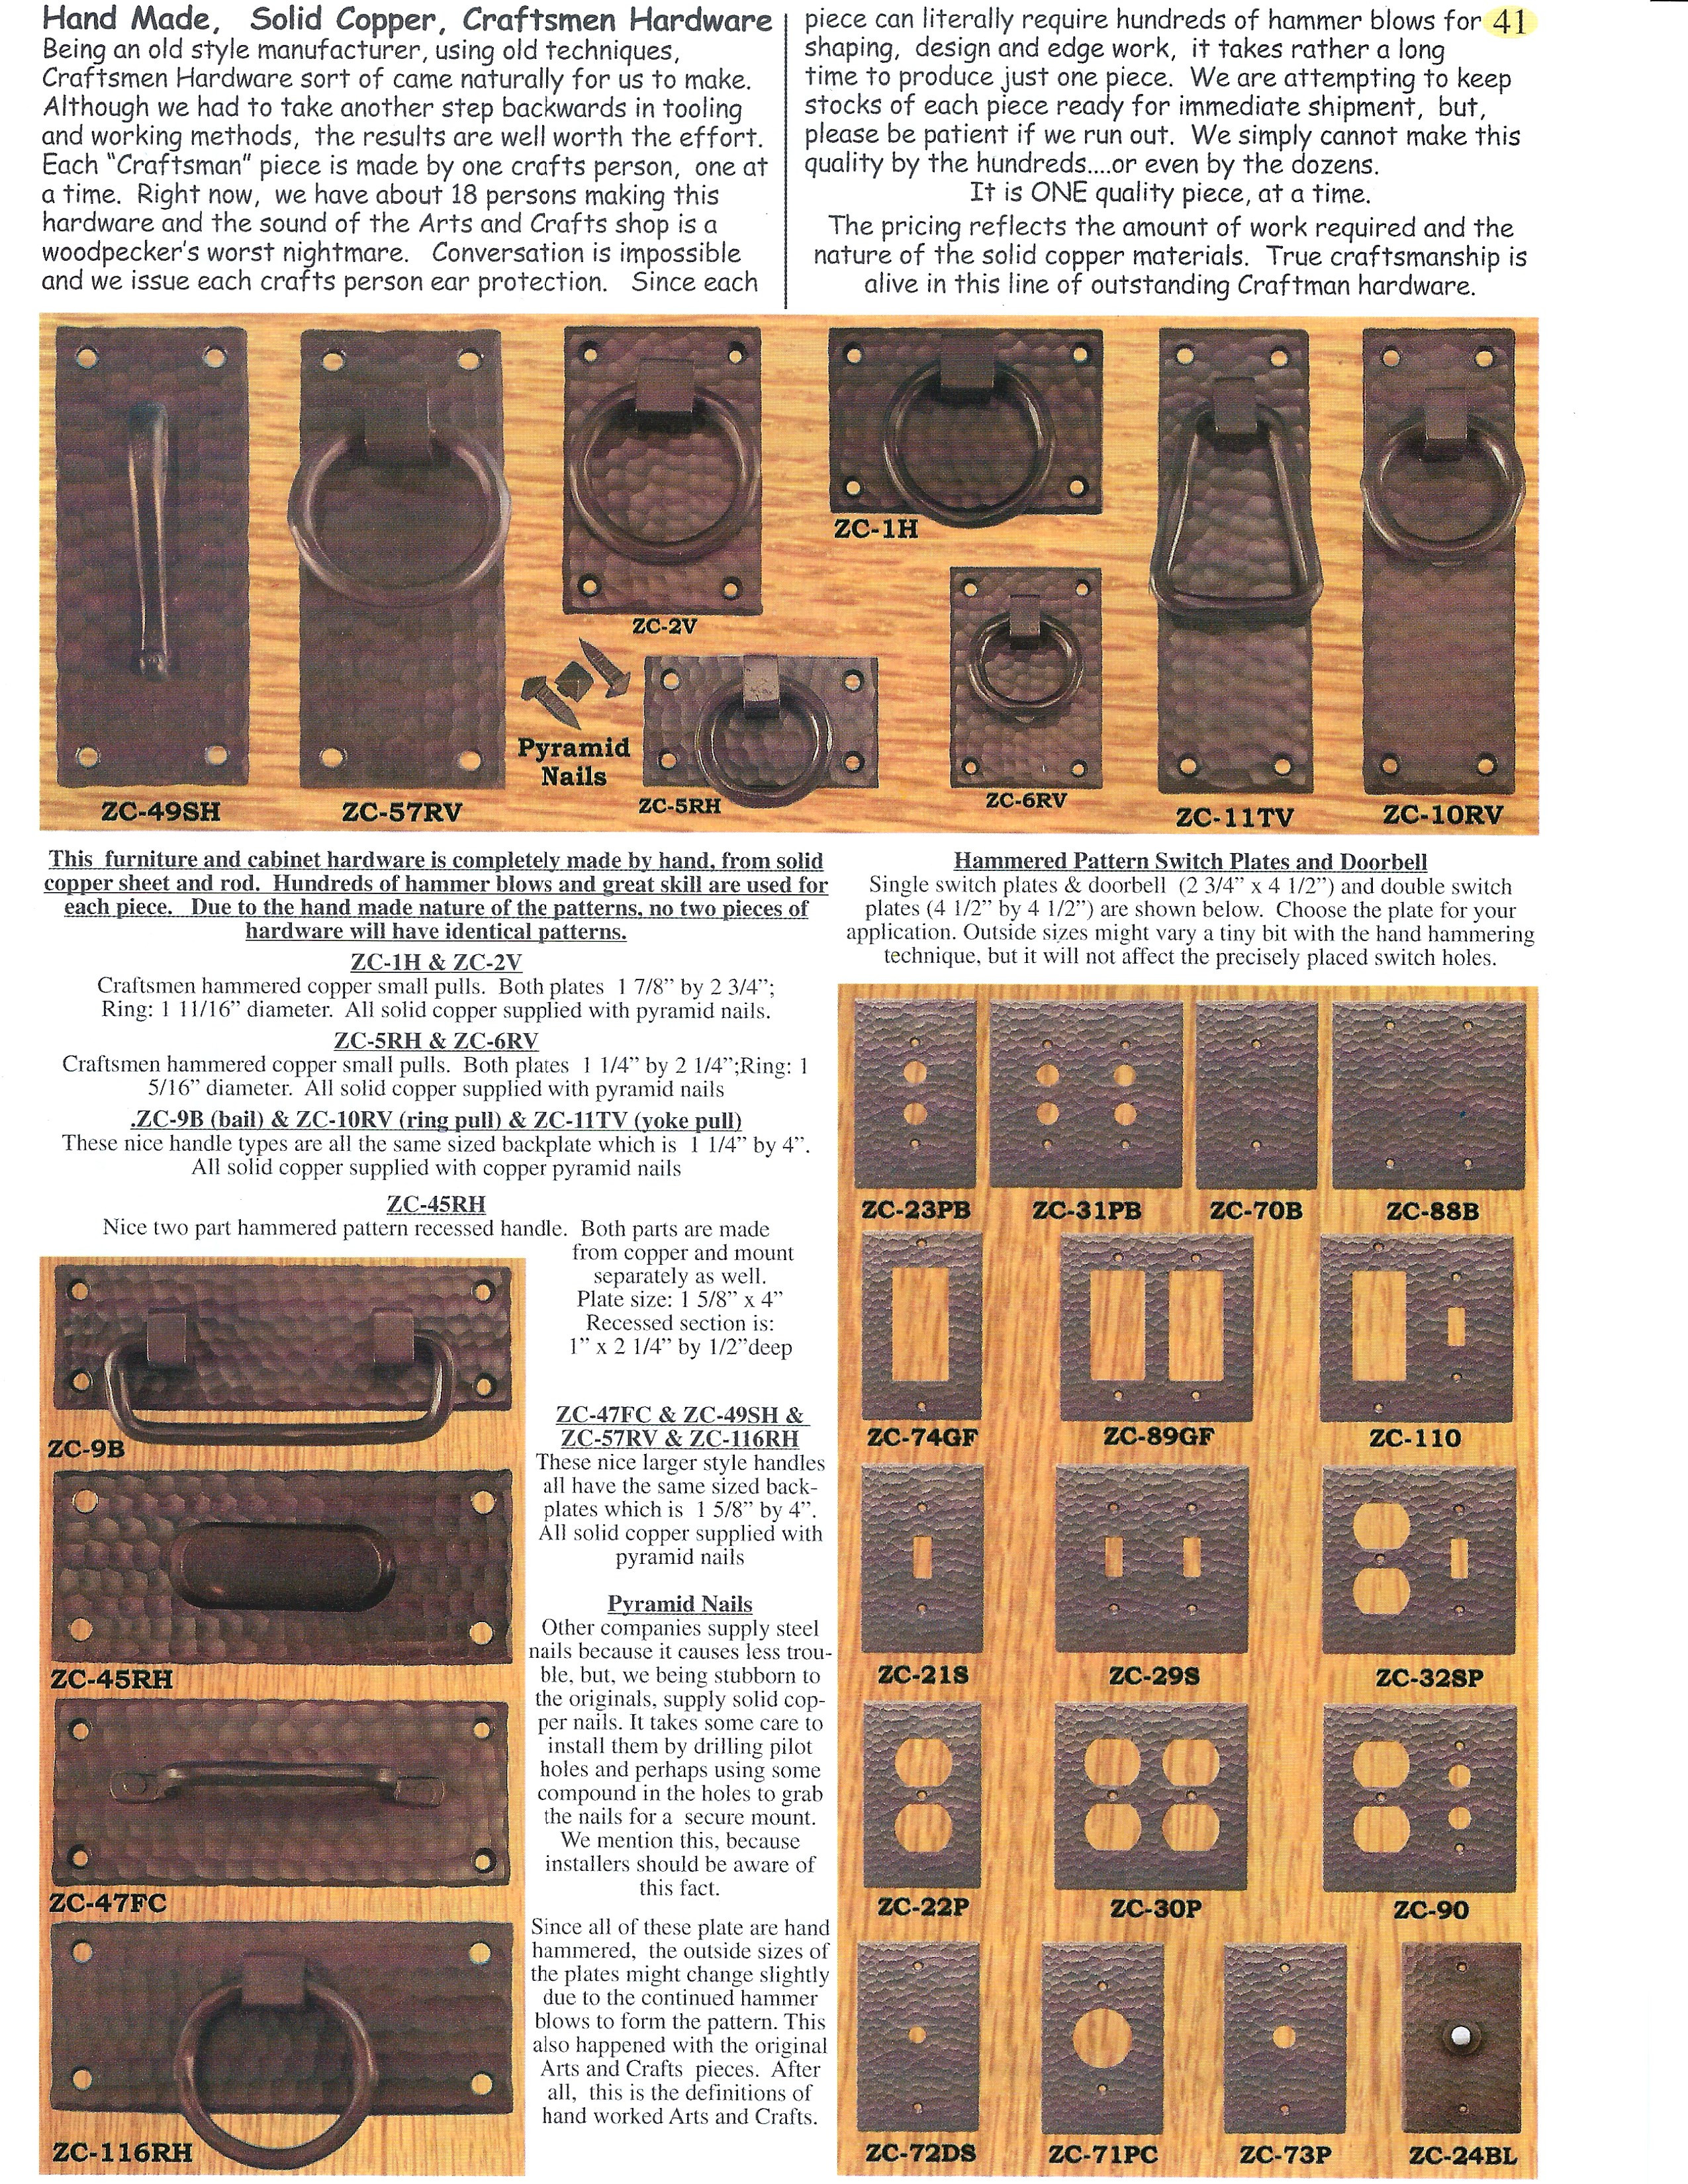 Catalog page 65